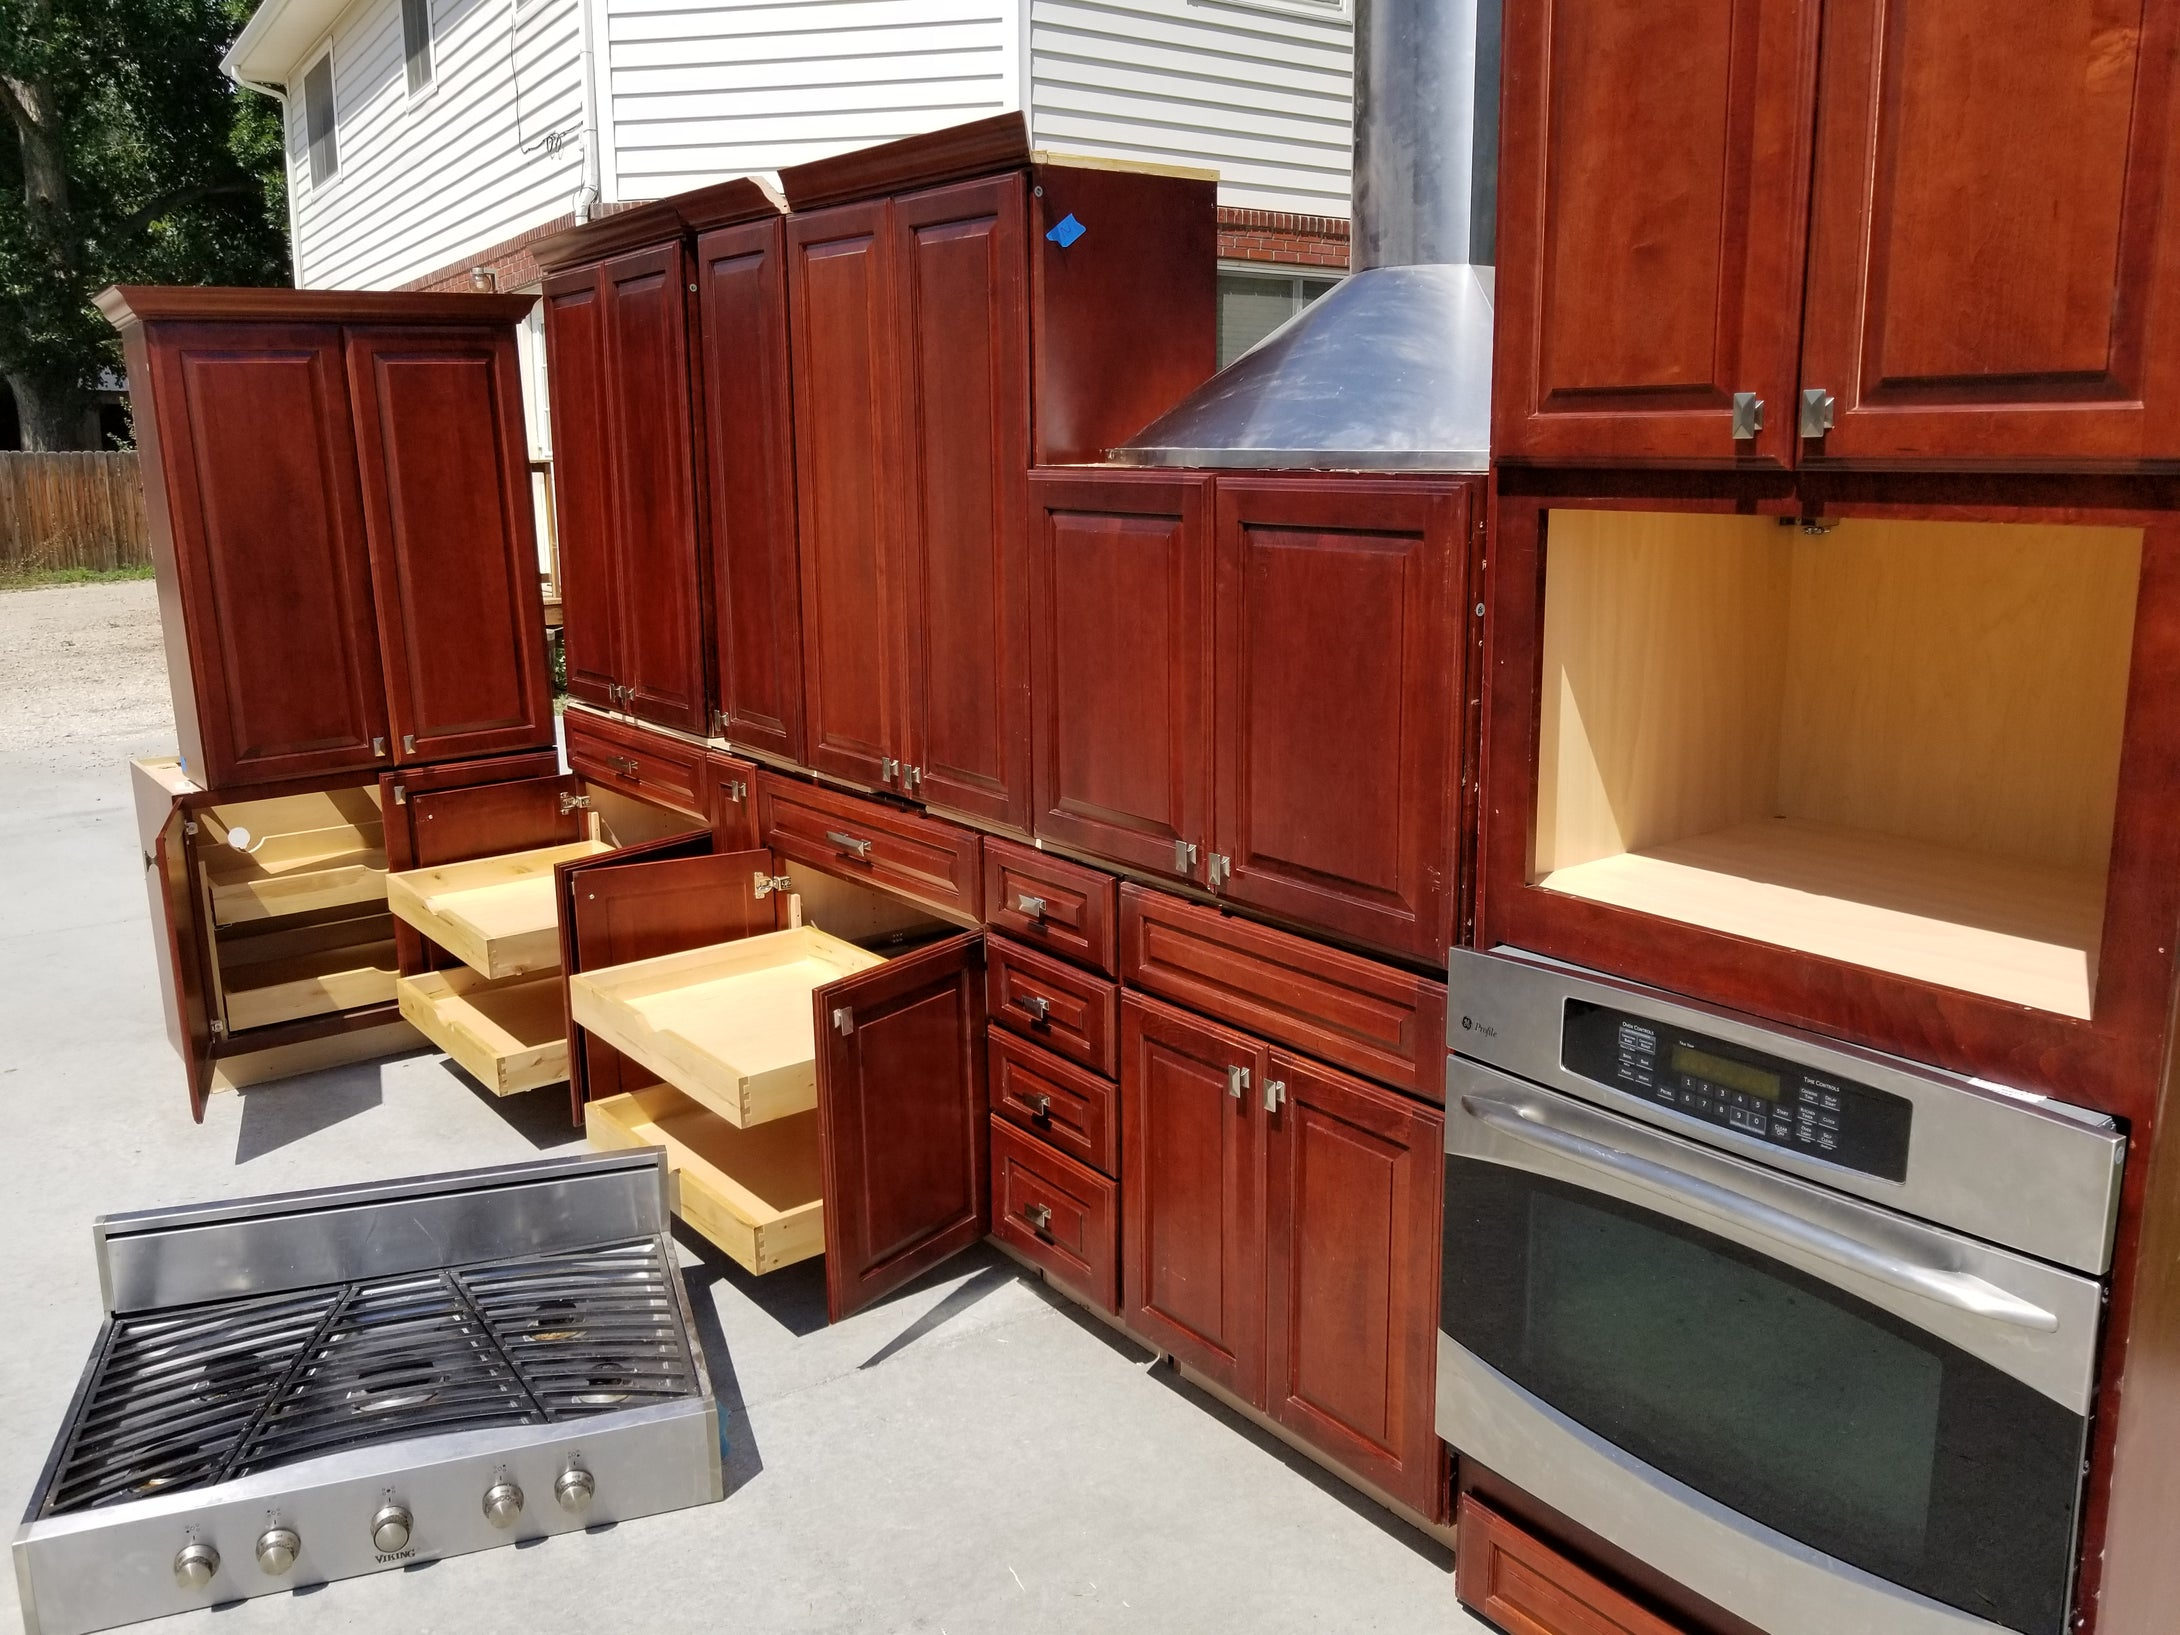 Dark Cherry Kitchen Cabinet Set w/  Silver Hardware and Pullouts